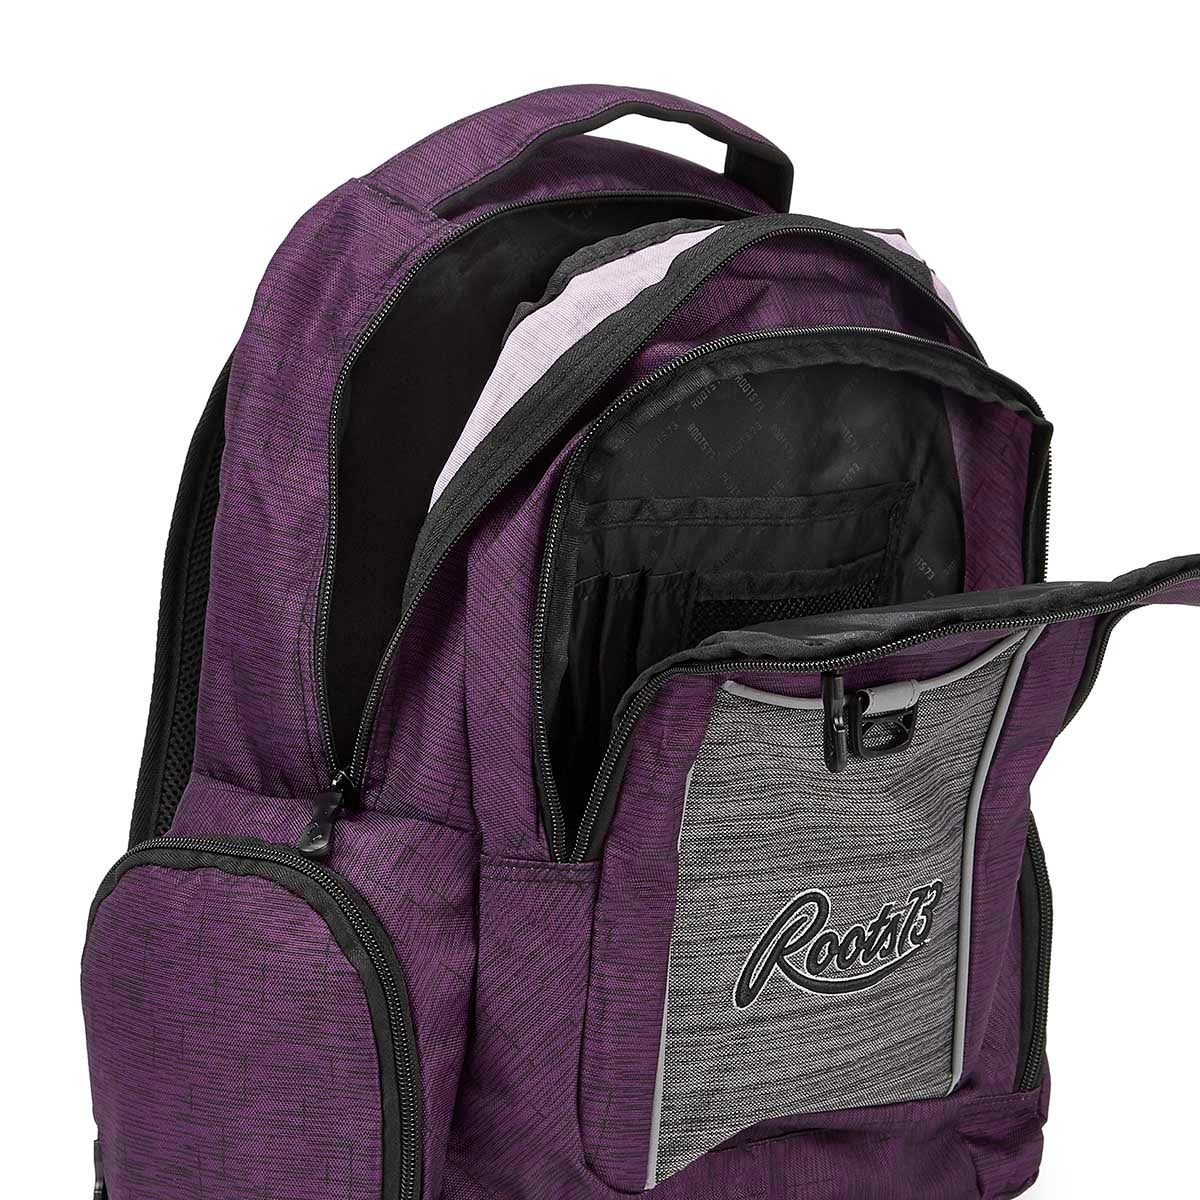 Roots73 purple backpack